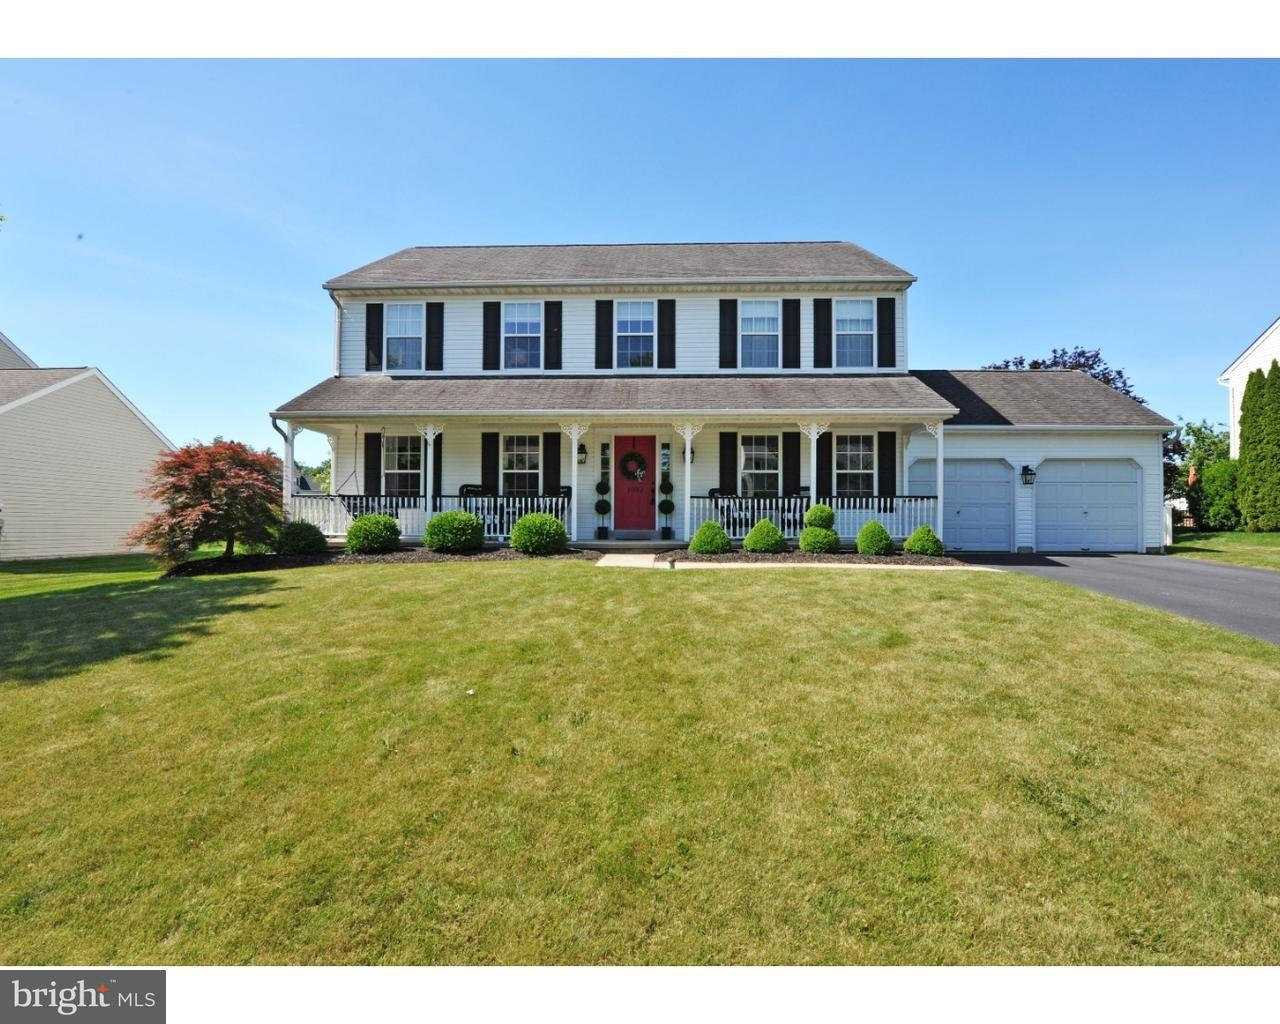 1052 KINGSCOTE DR, HARLEYSVILLE - Listed at $425,000,